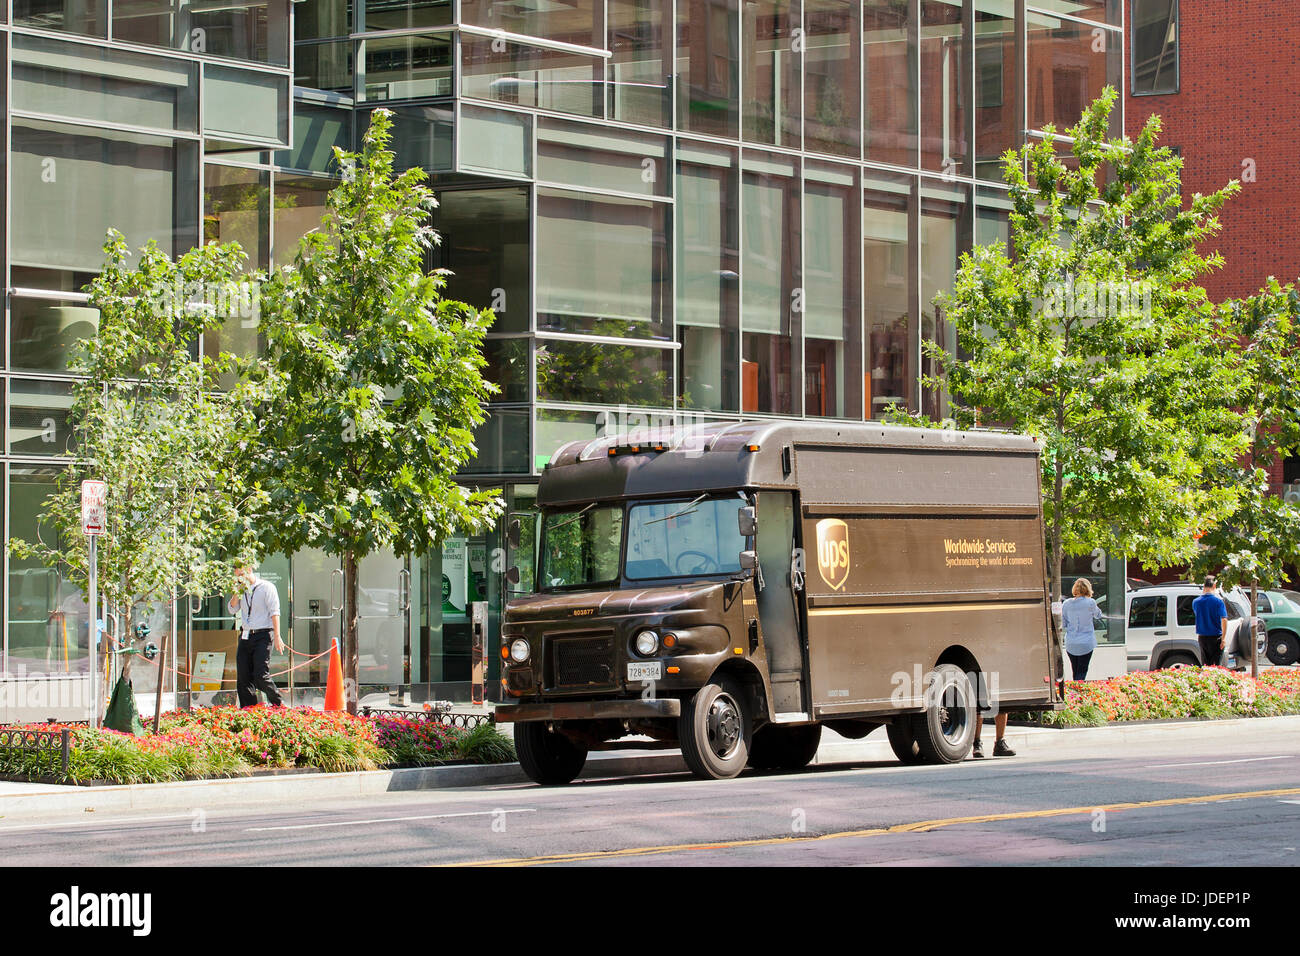 Ups parked truck photos & ups parked truck images alamy